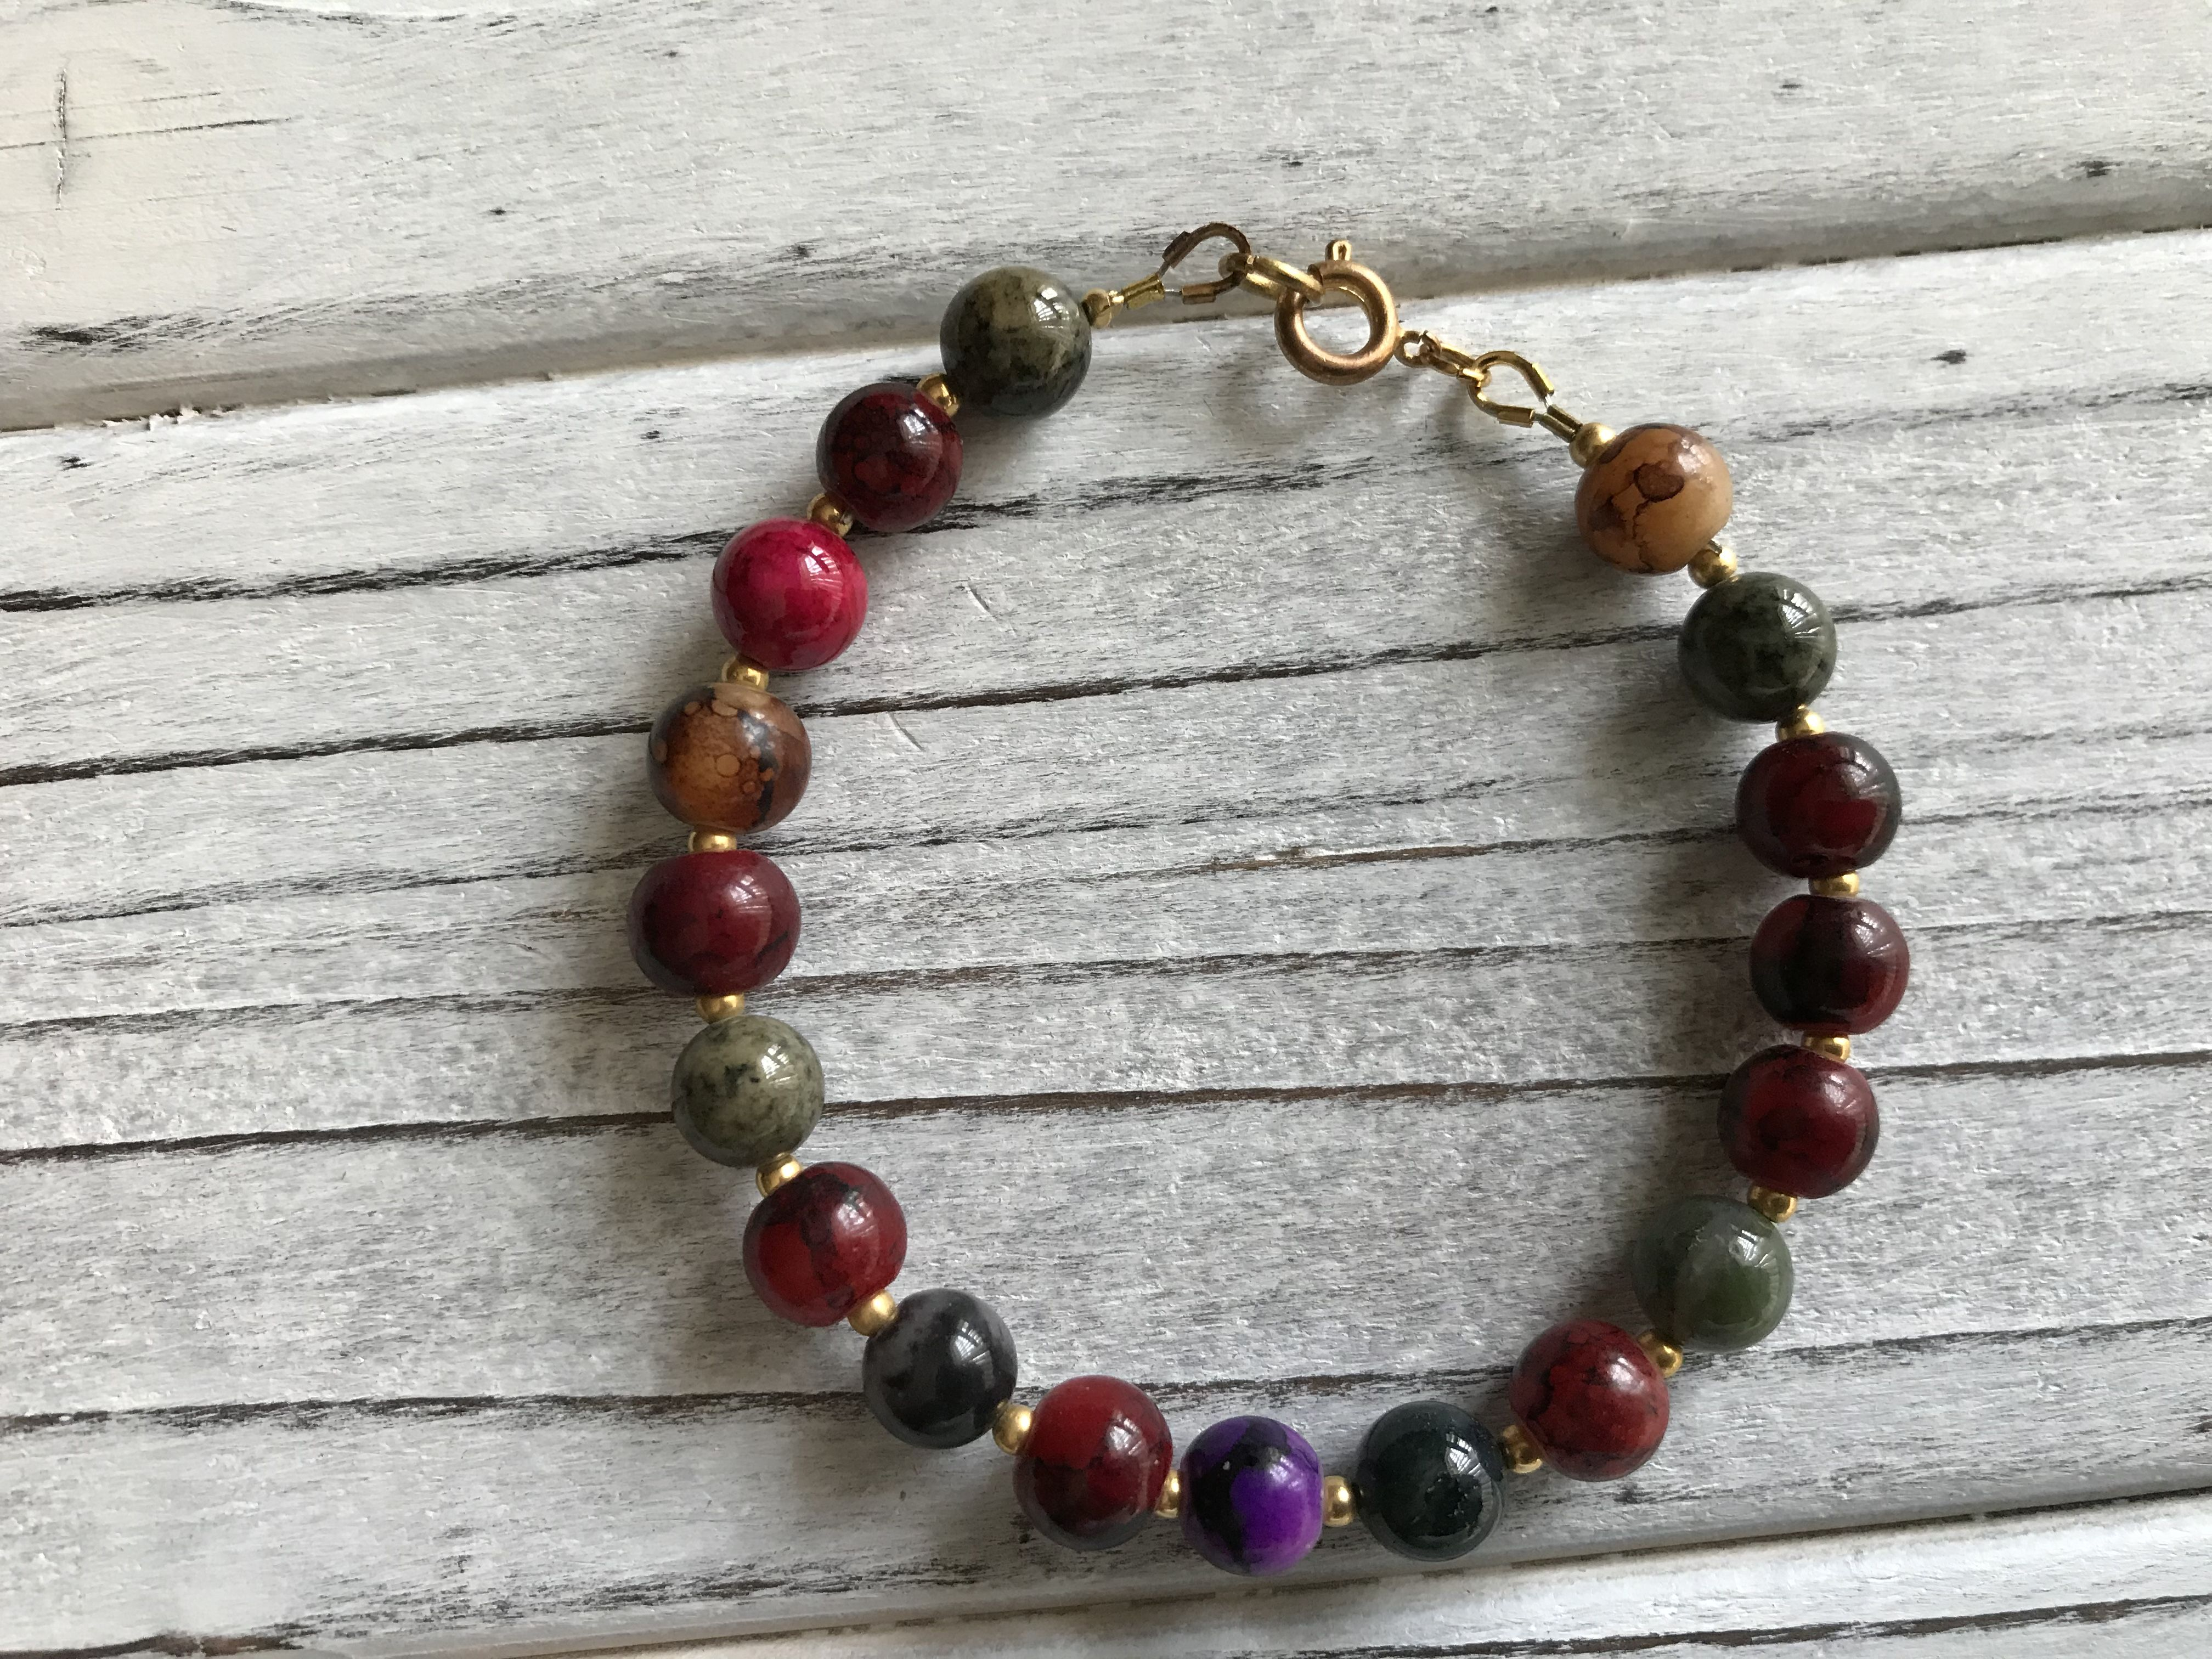 bohostyle bohemian unique clasp healingstones naturalstone stretch gemstones positiveenergy giftsforall